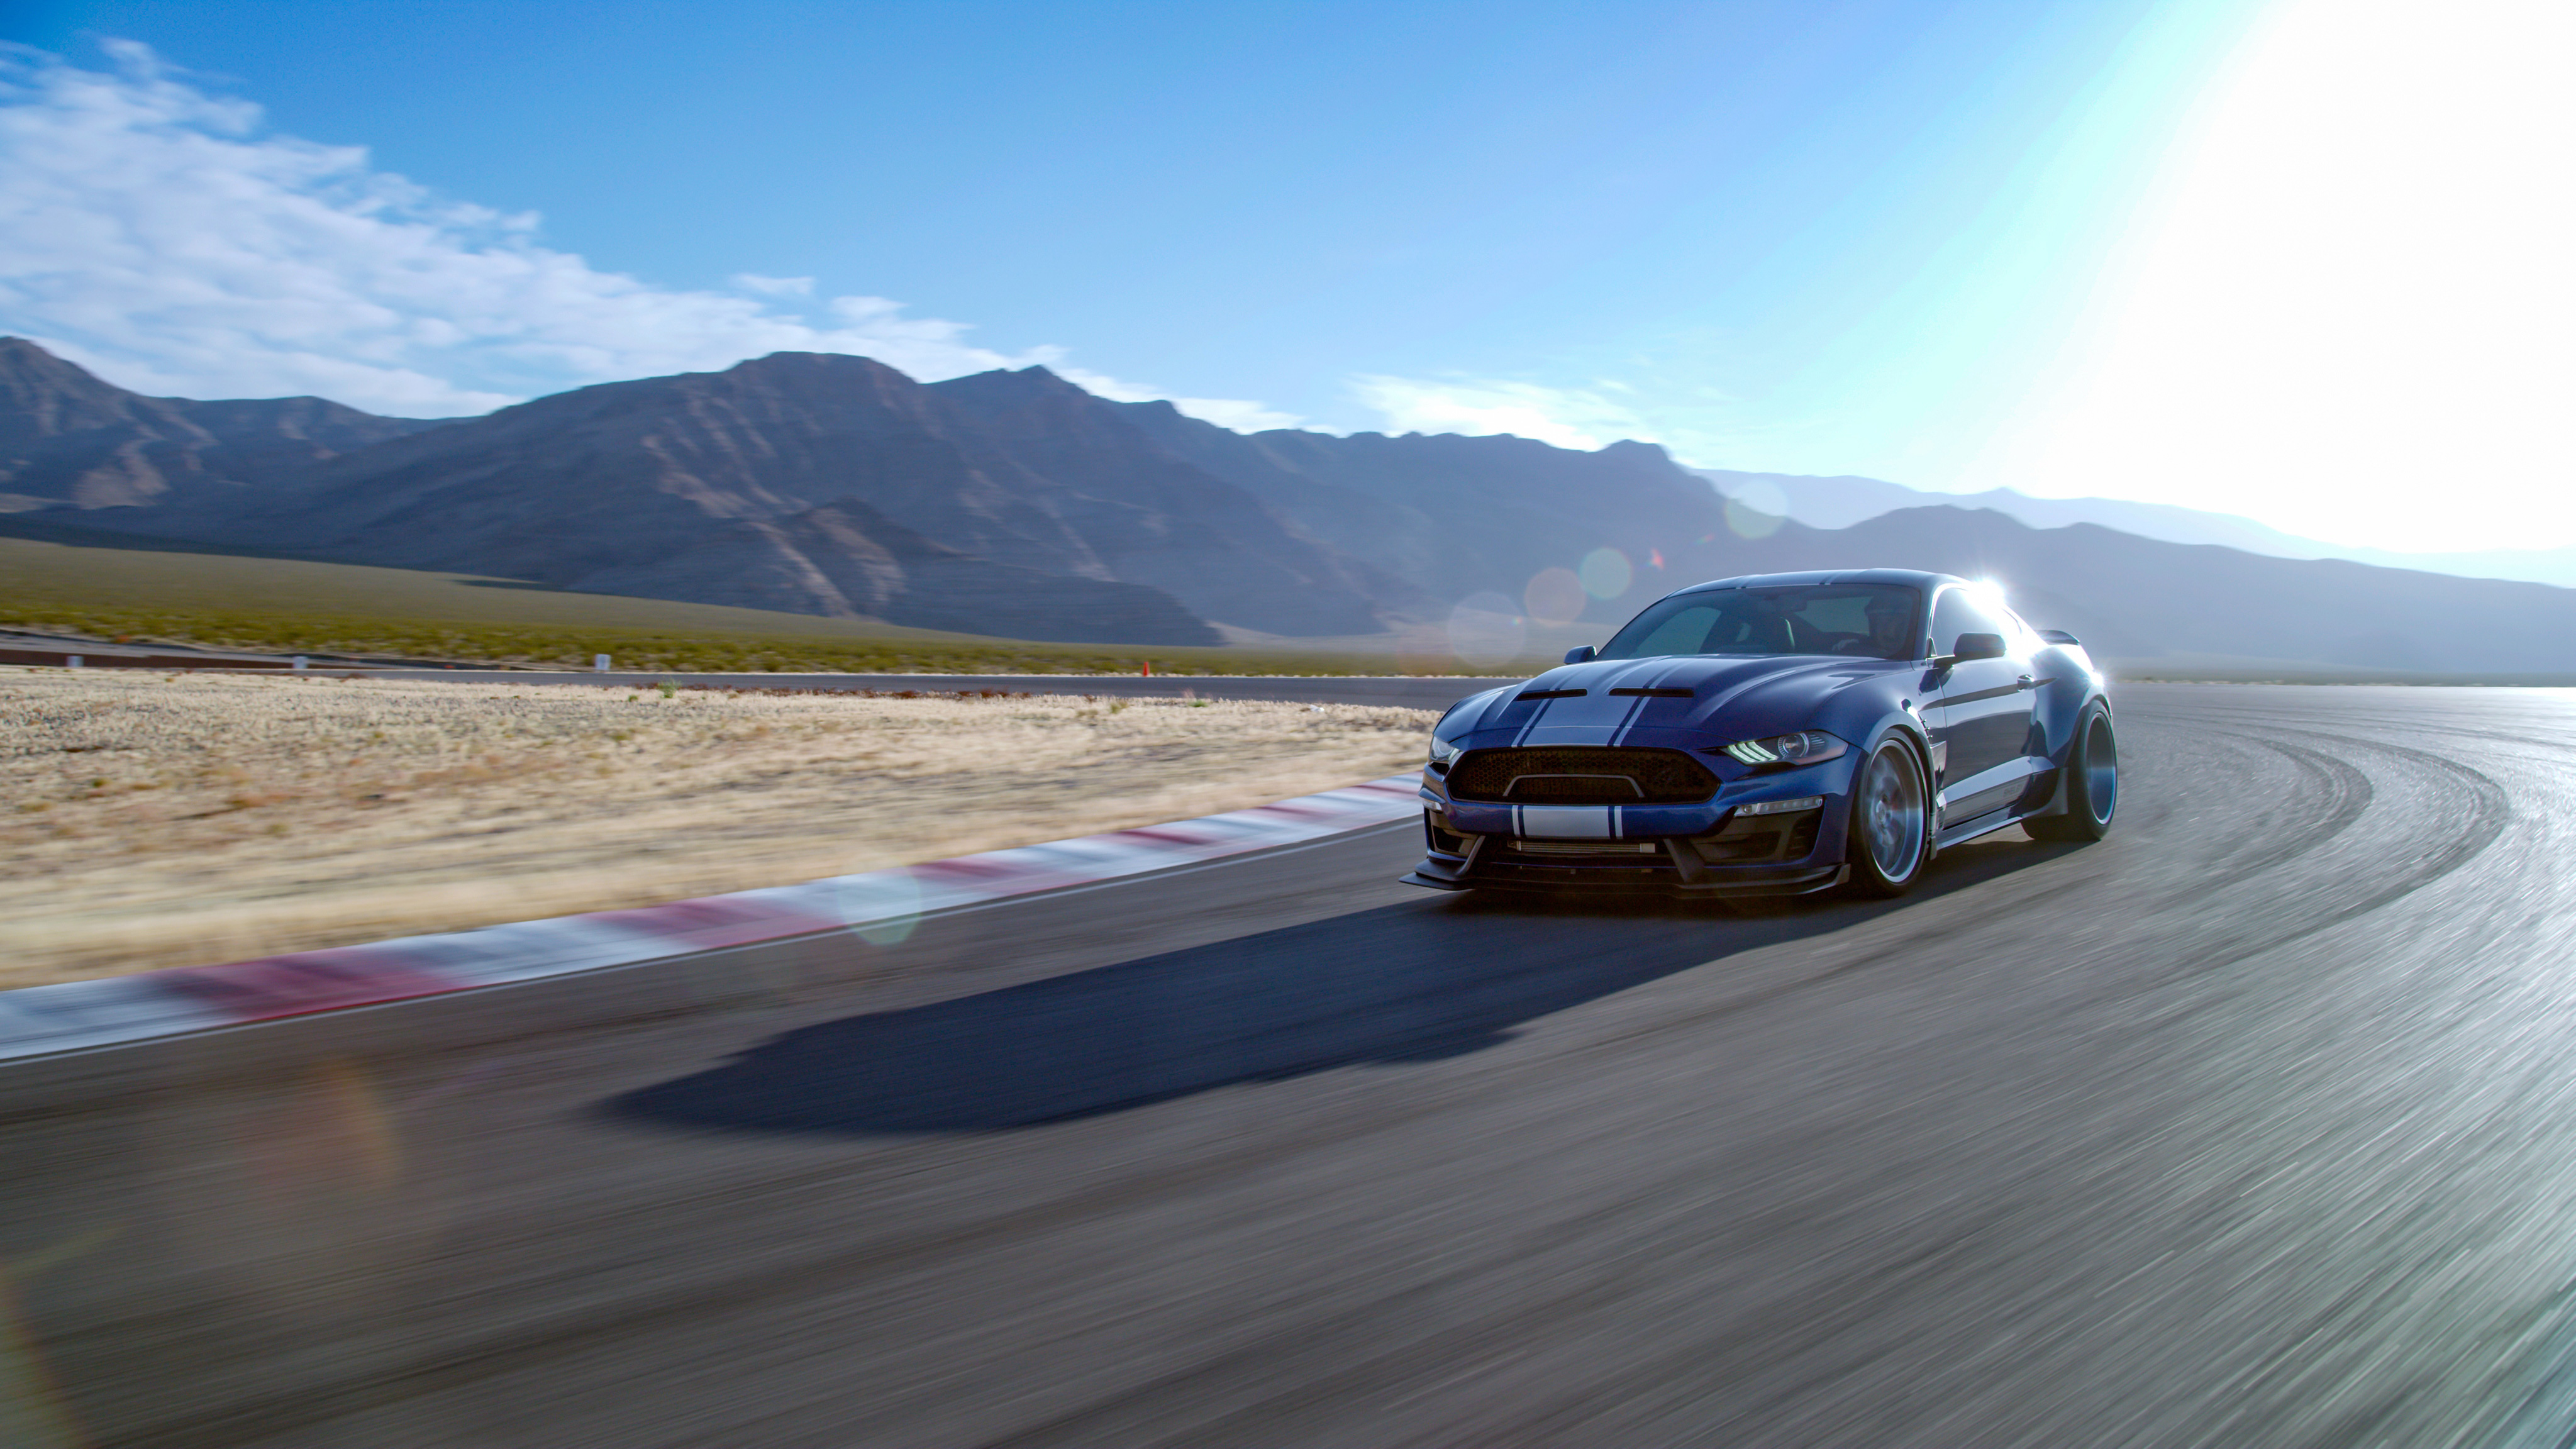 2019 Ford Mustang Shelby GT350 4k, HD Cars, 4k Wallpapers